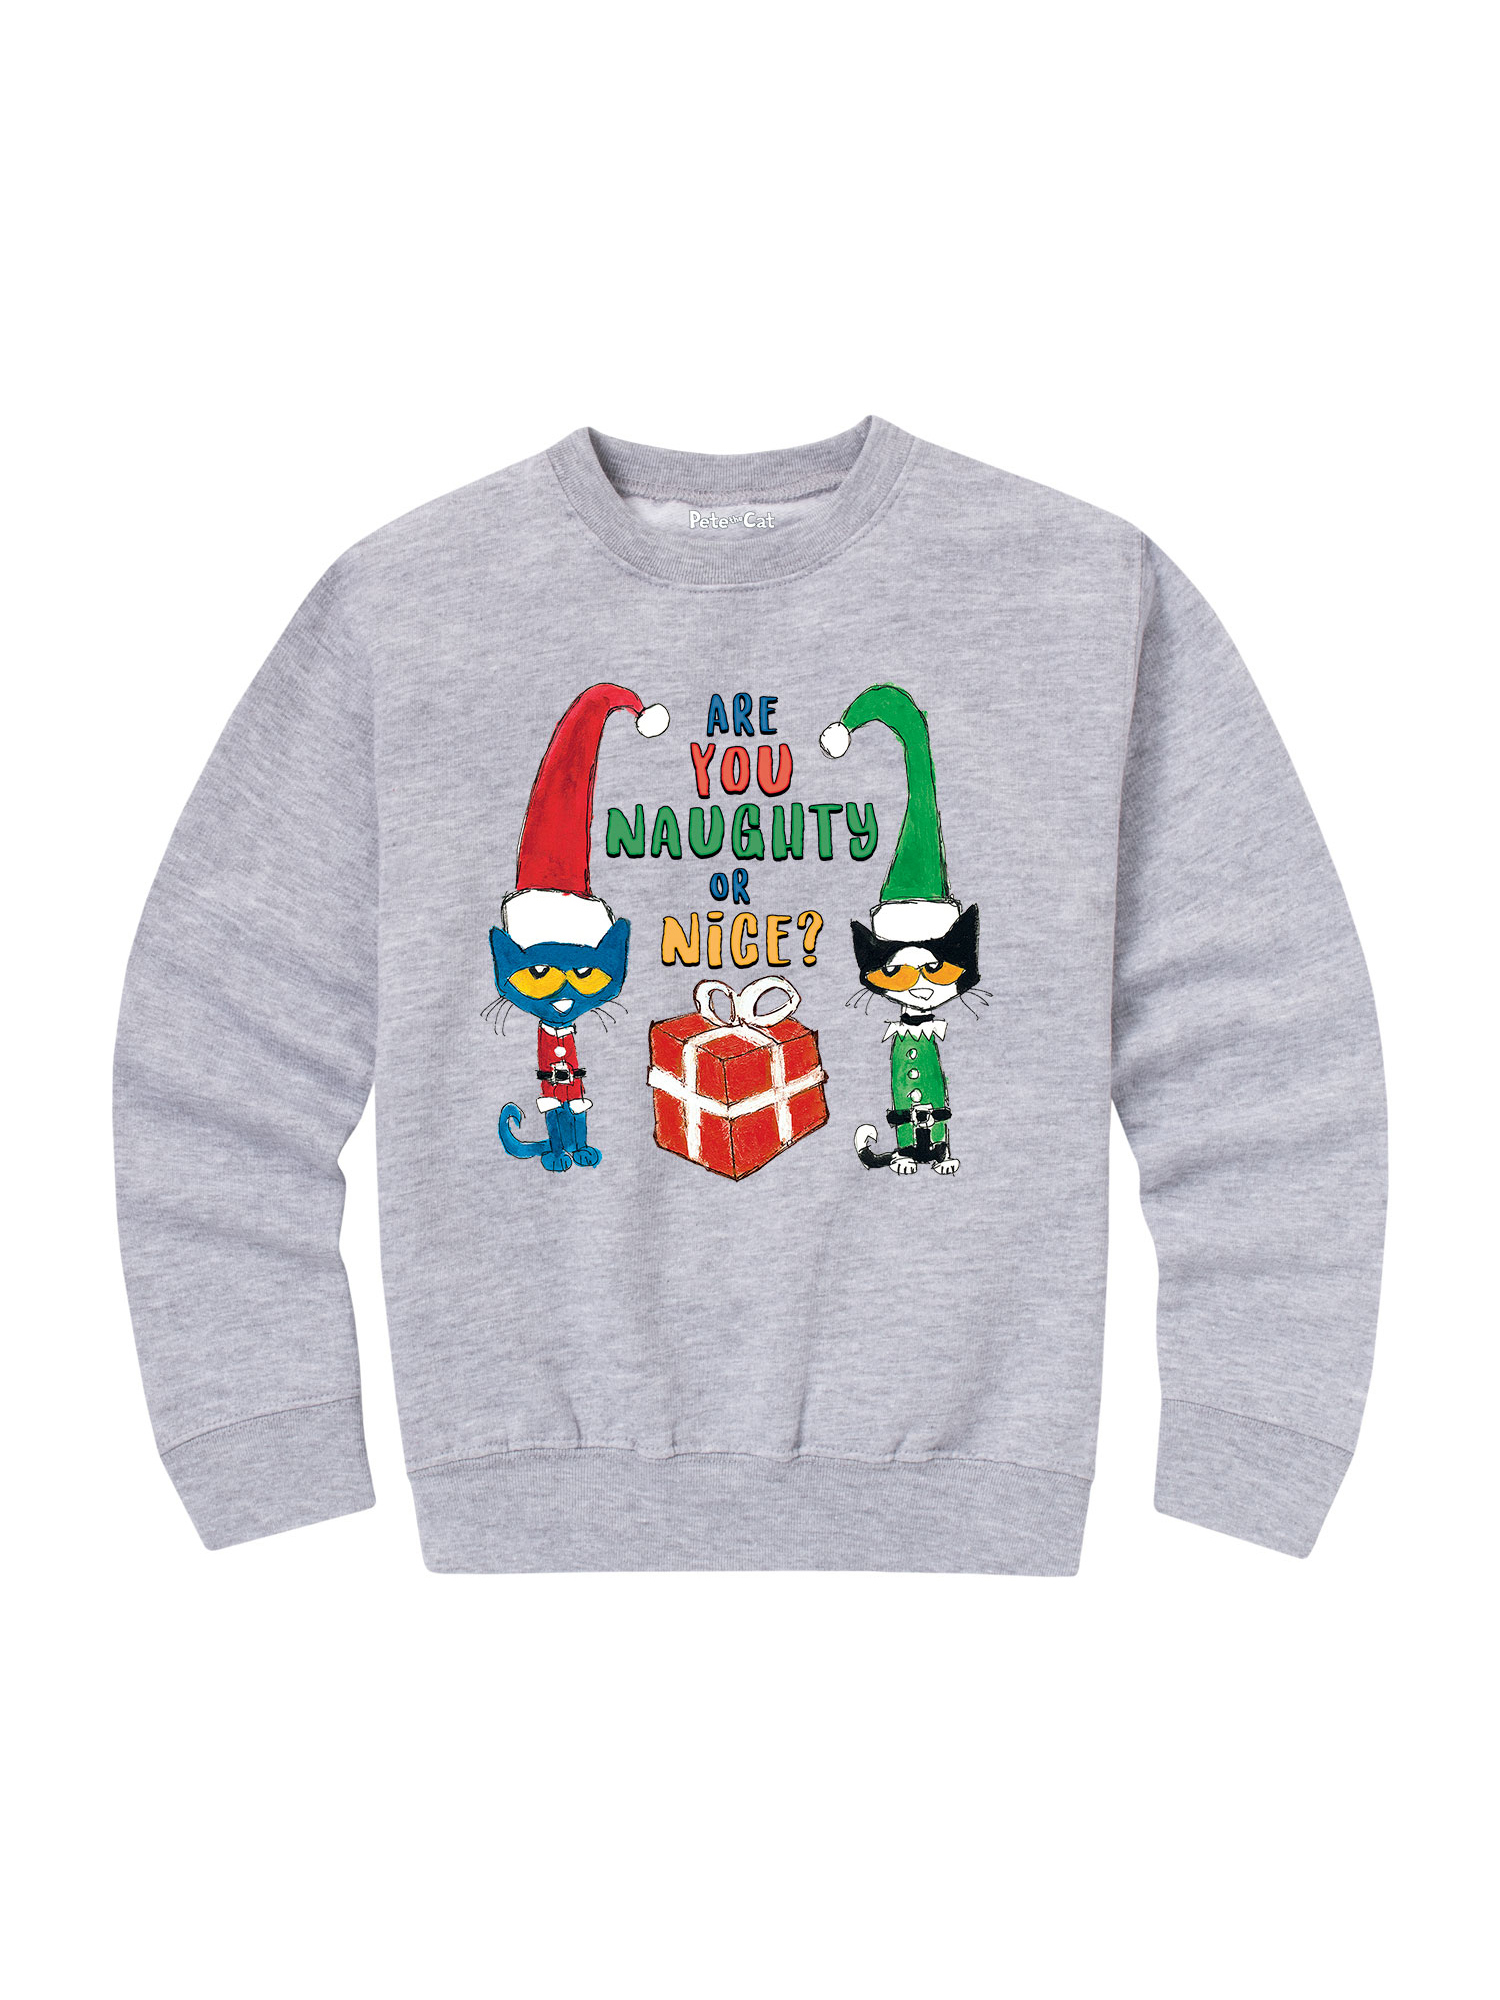 Ptc Naughty Or Nice - Toddler Crew Fleece